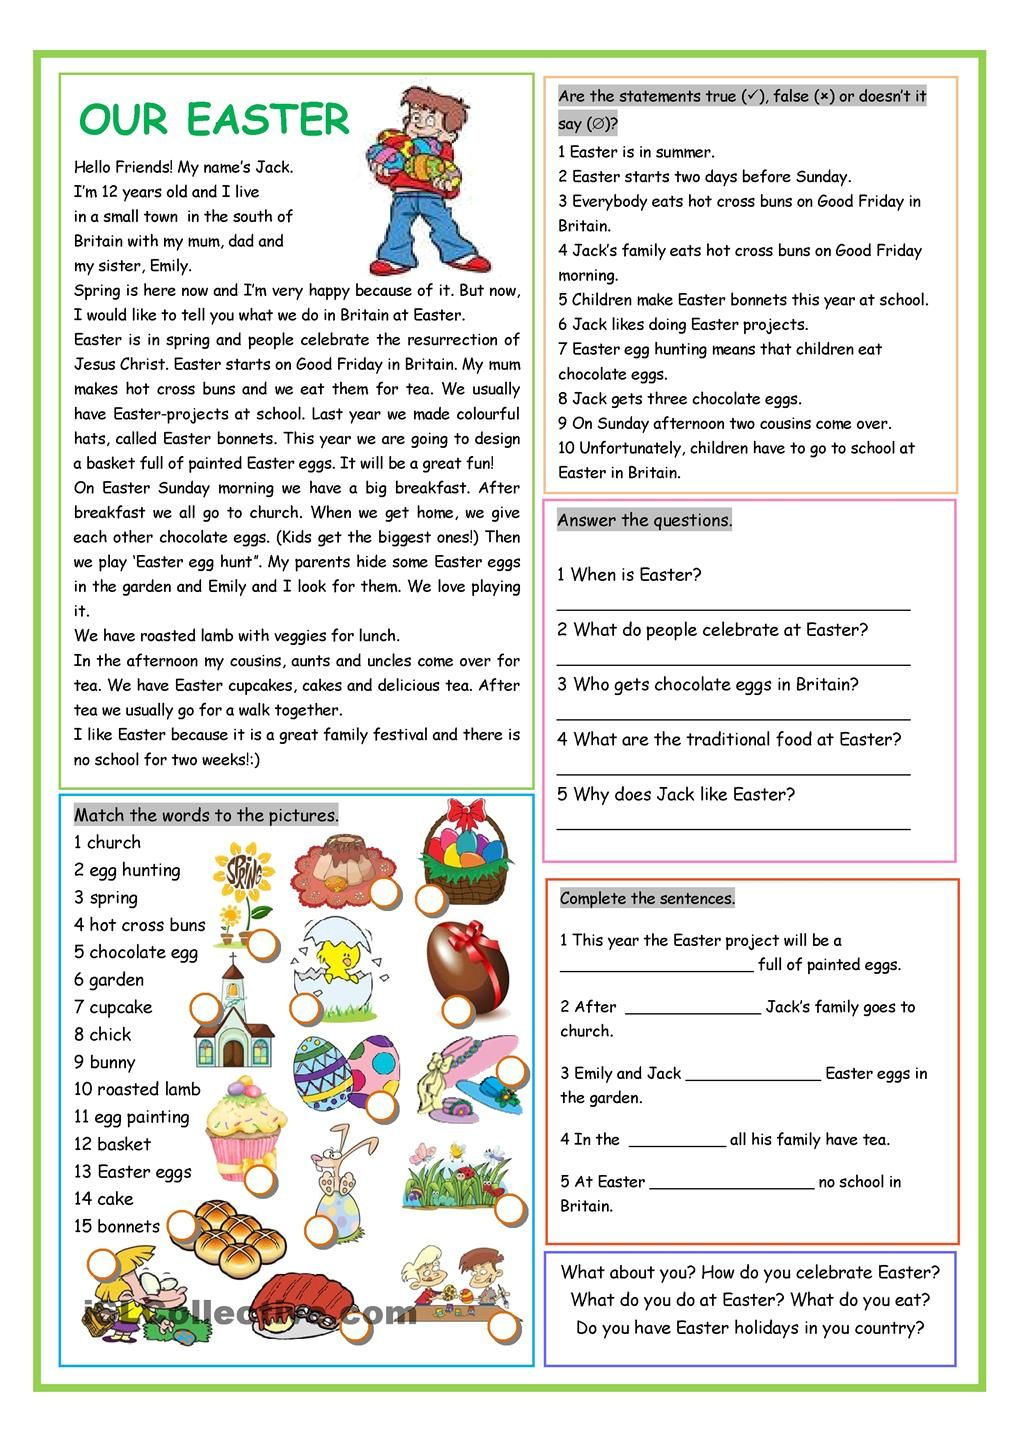 Uncategorized Chocolate Fever Worksheets our easter mia pinterest english and worksheets worksheet free esl printable made by teachers